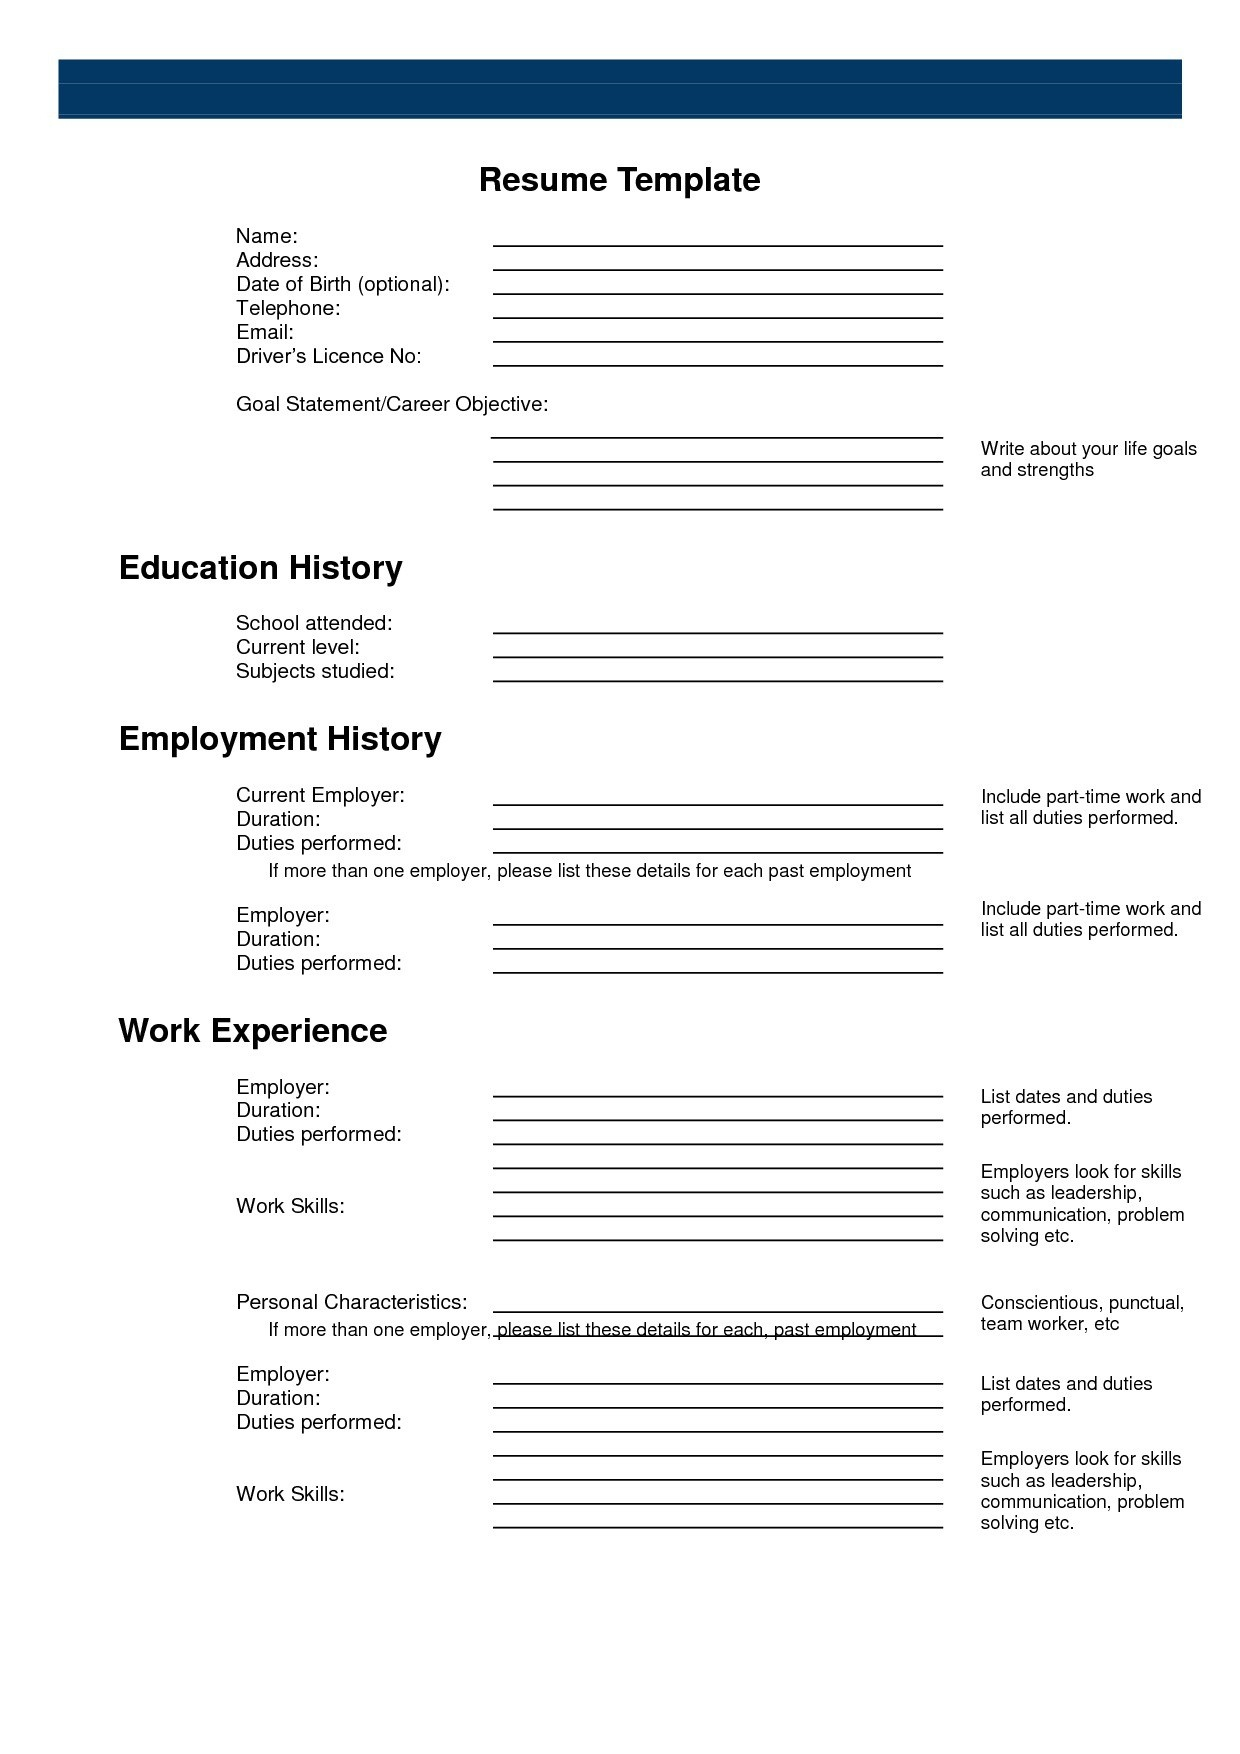 Printable Resume Form Surprising Inspiration Templates 2 Sample - Free Printable Resume Templates